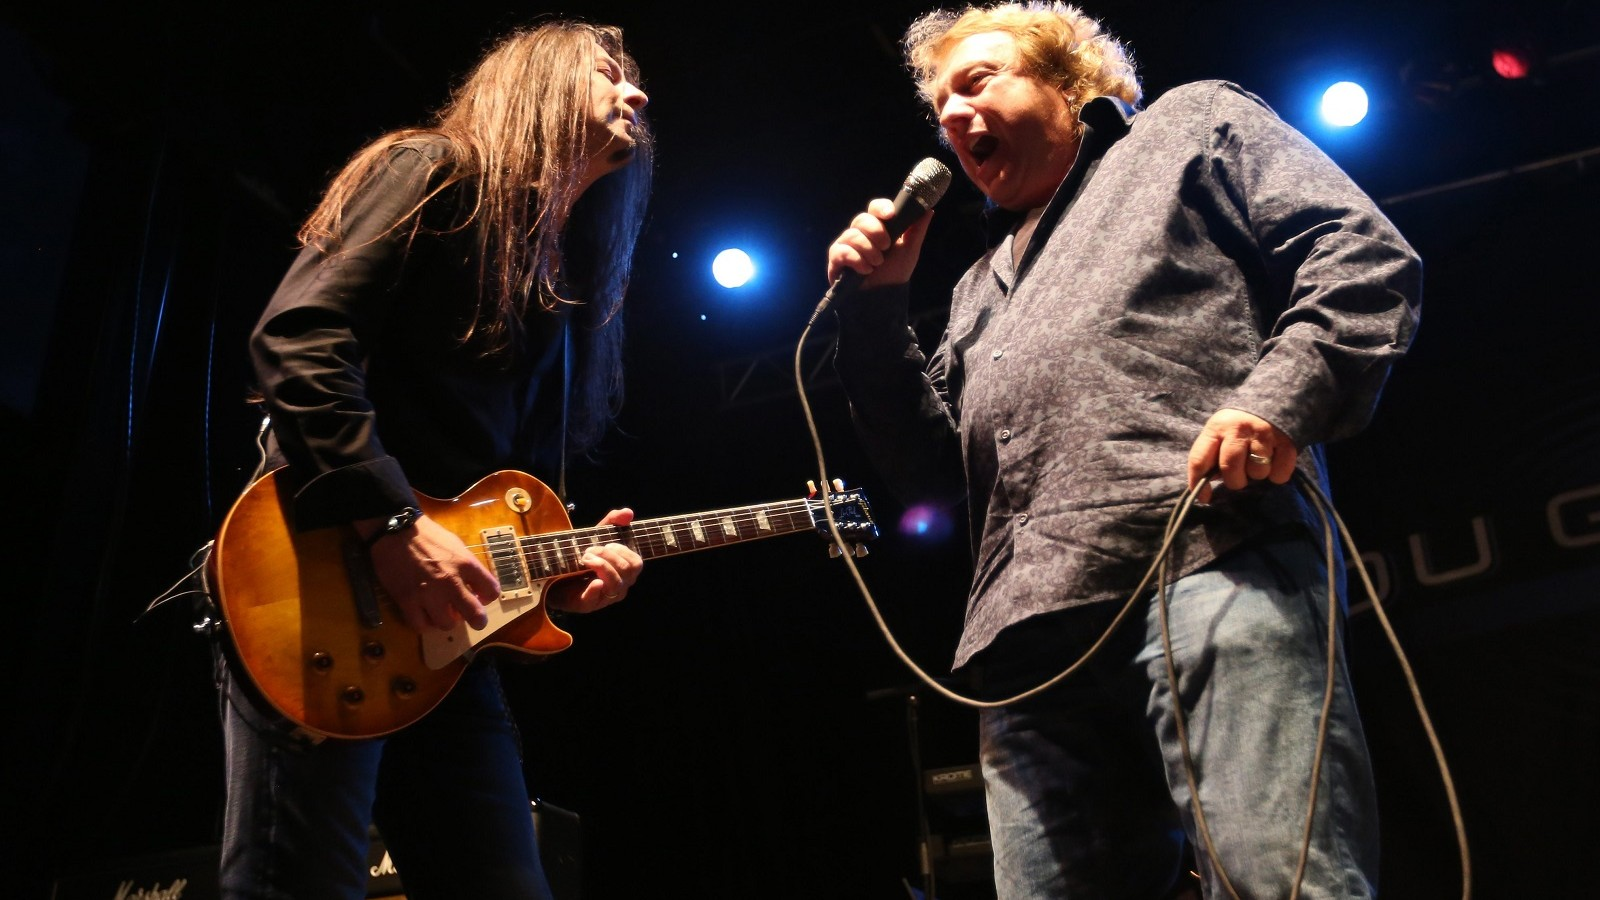 Rochester native Lou Gramm, the original lead singer of the rock band Foreigner, returns to Gratwick Riverside Park for North Tonawanda's Rockin' in the Park. On left is guitarist Michael Staertow.  (Sharon Cantillon/Buffalo News)